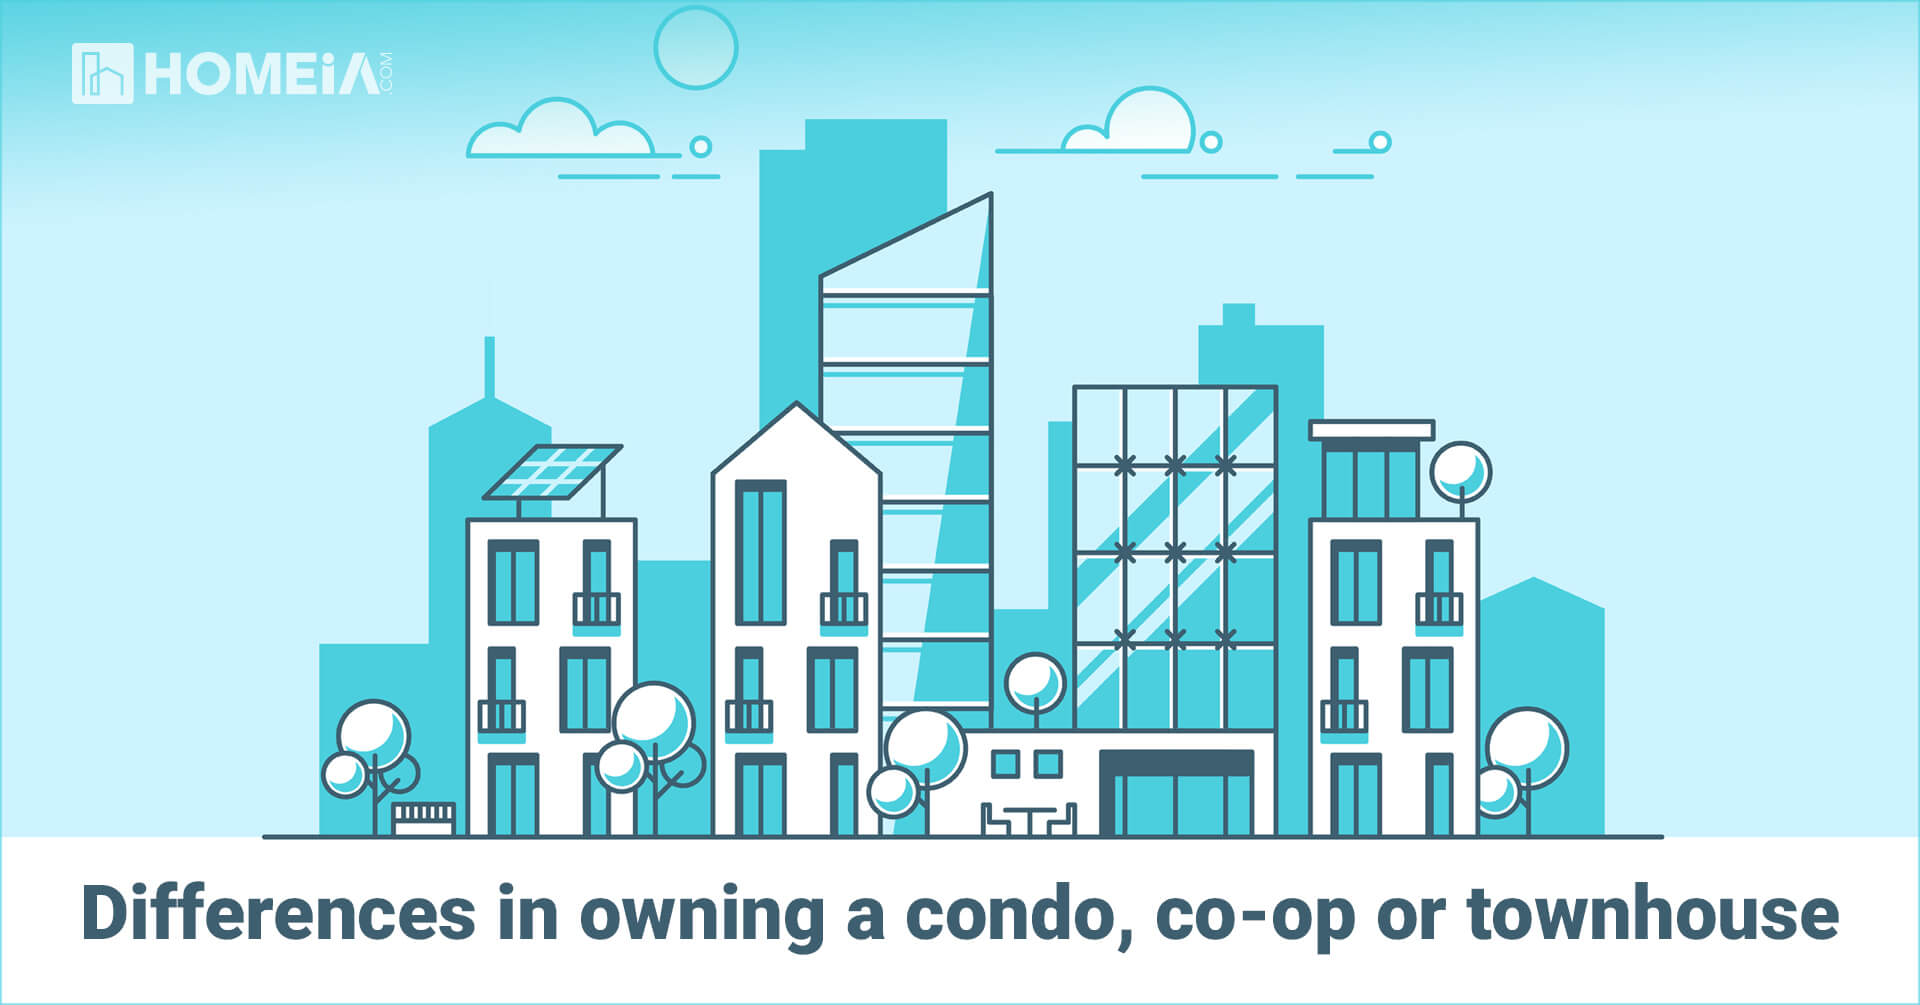 Differences in Owning a Condo, Co-op or Townhouse